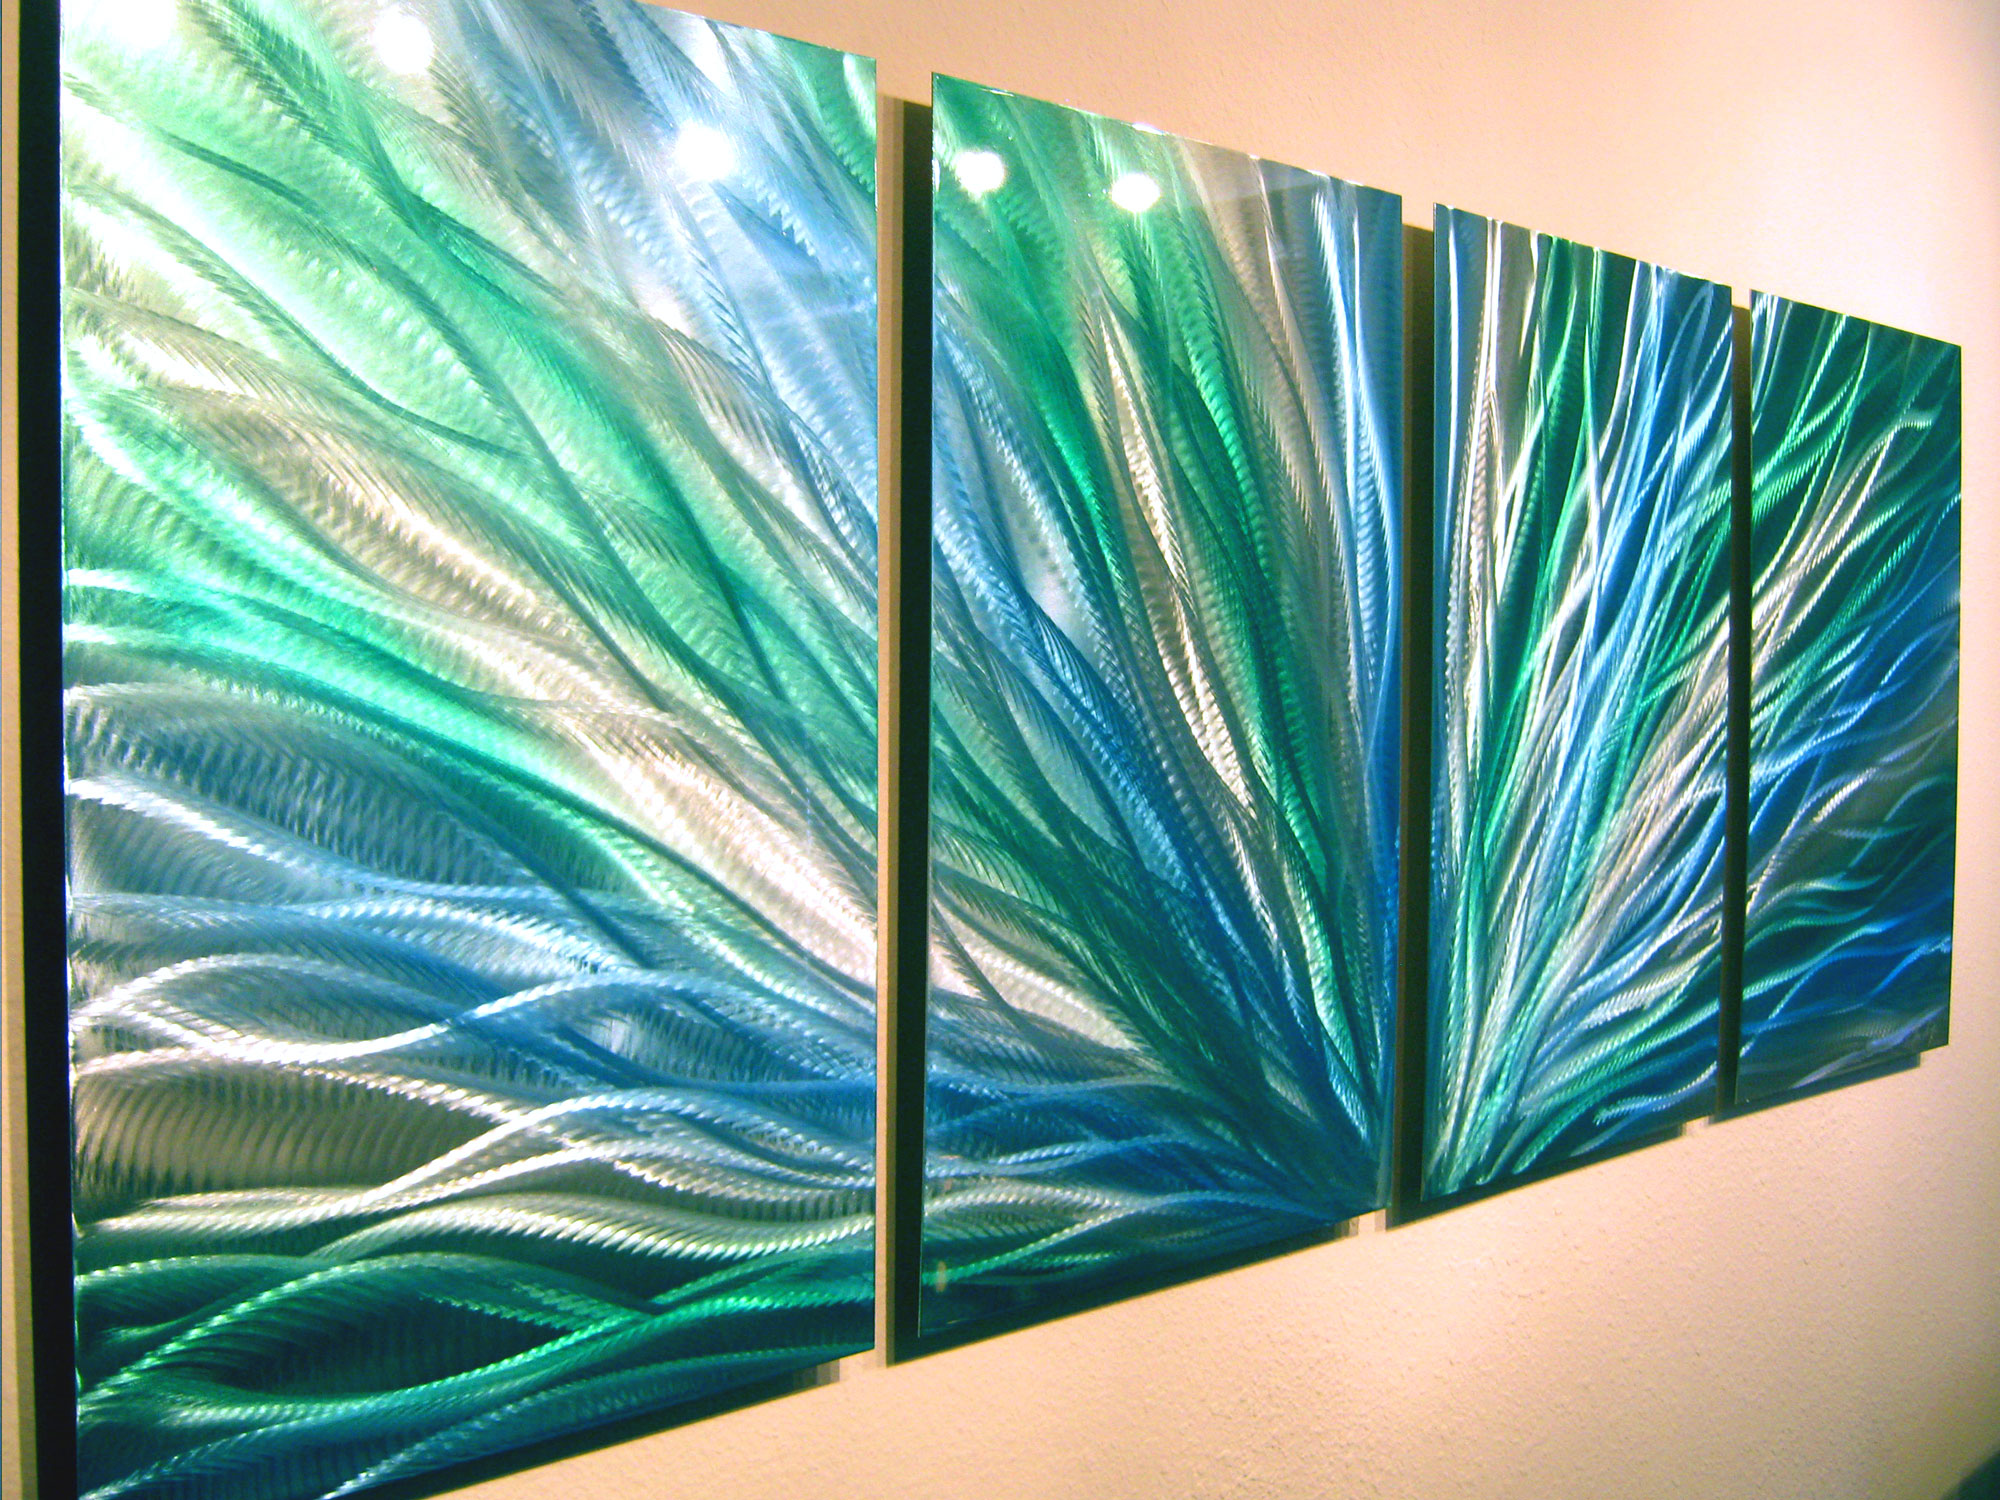 Blue Metal Wall Art Captivating Radiance Blue Green Abstract Metal Wall Art Contemporary Modern Design Ideas